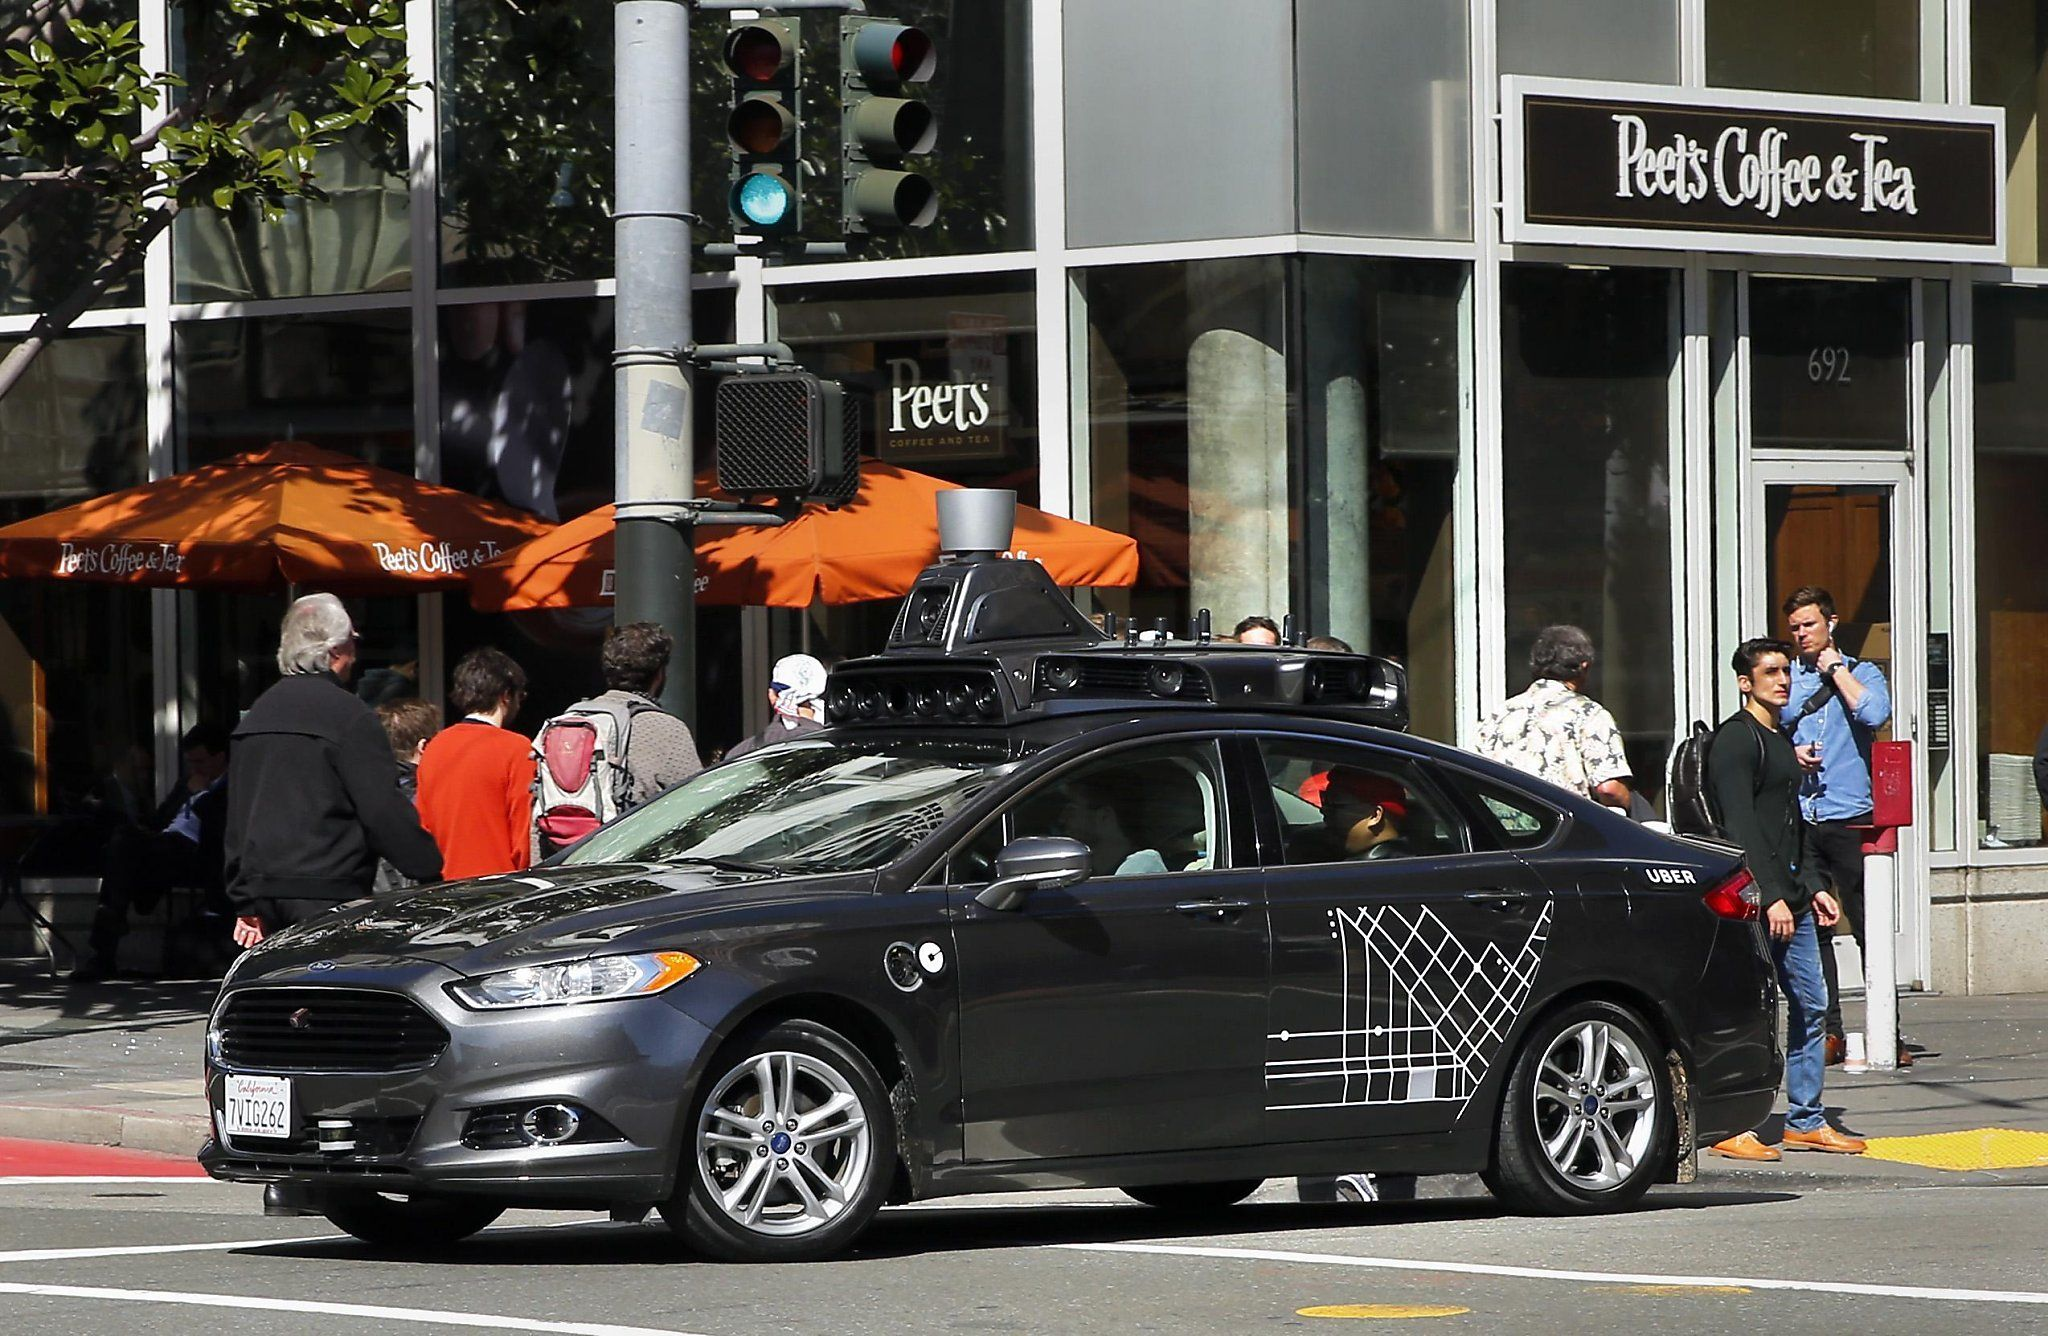 State Dmv Backs Allowing Self Driving Cars With No Human On Board